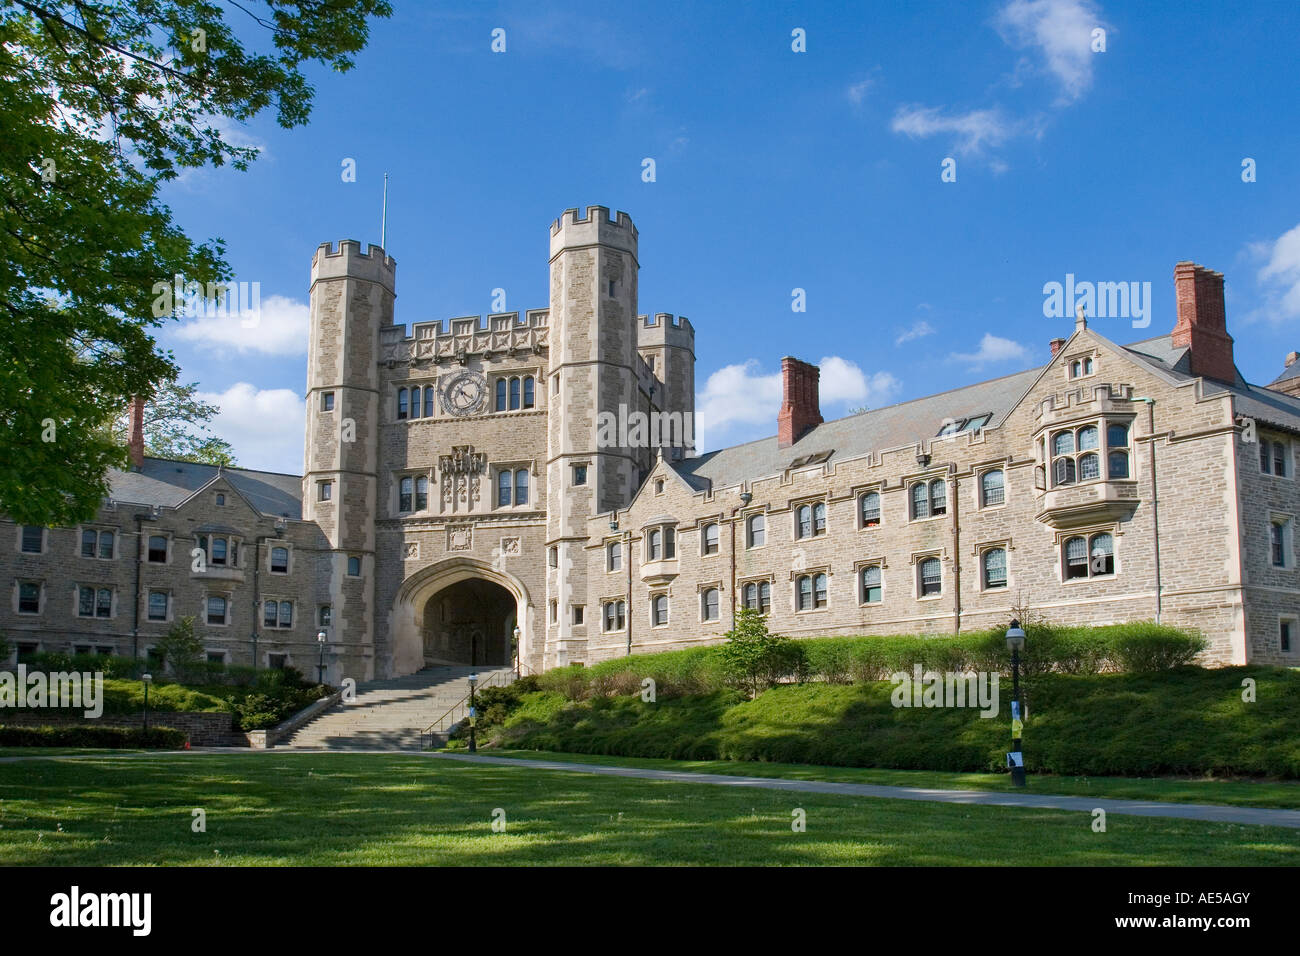 Buyers Residential And Blair Hall With Clock Tower Dorms At Princeton  University   Collegiate Gothic Architecture   New Jersey